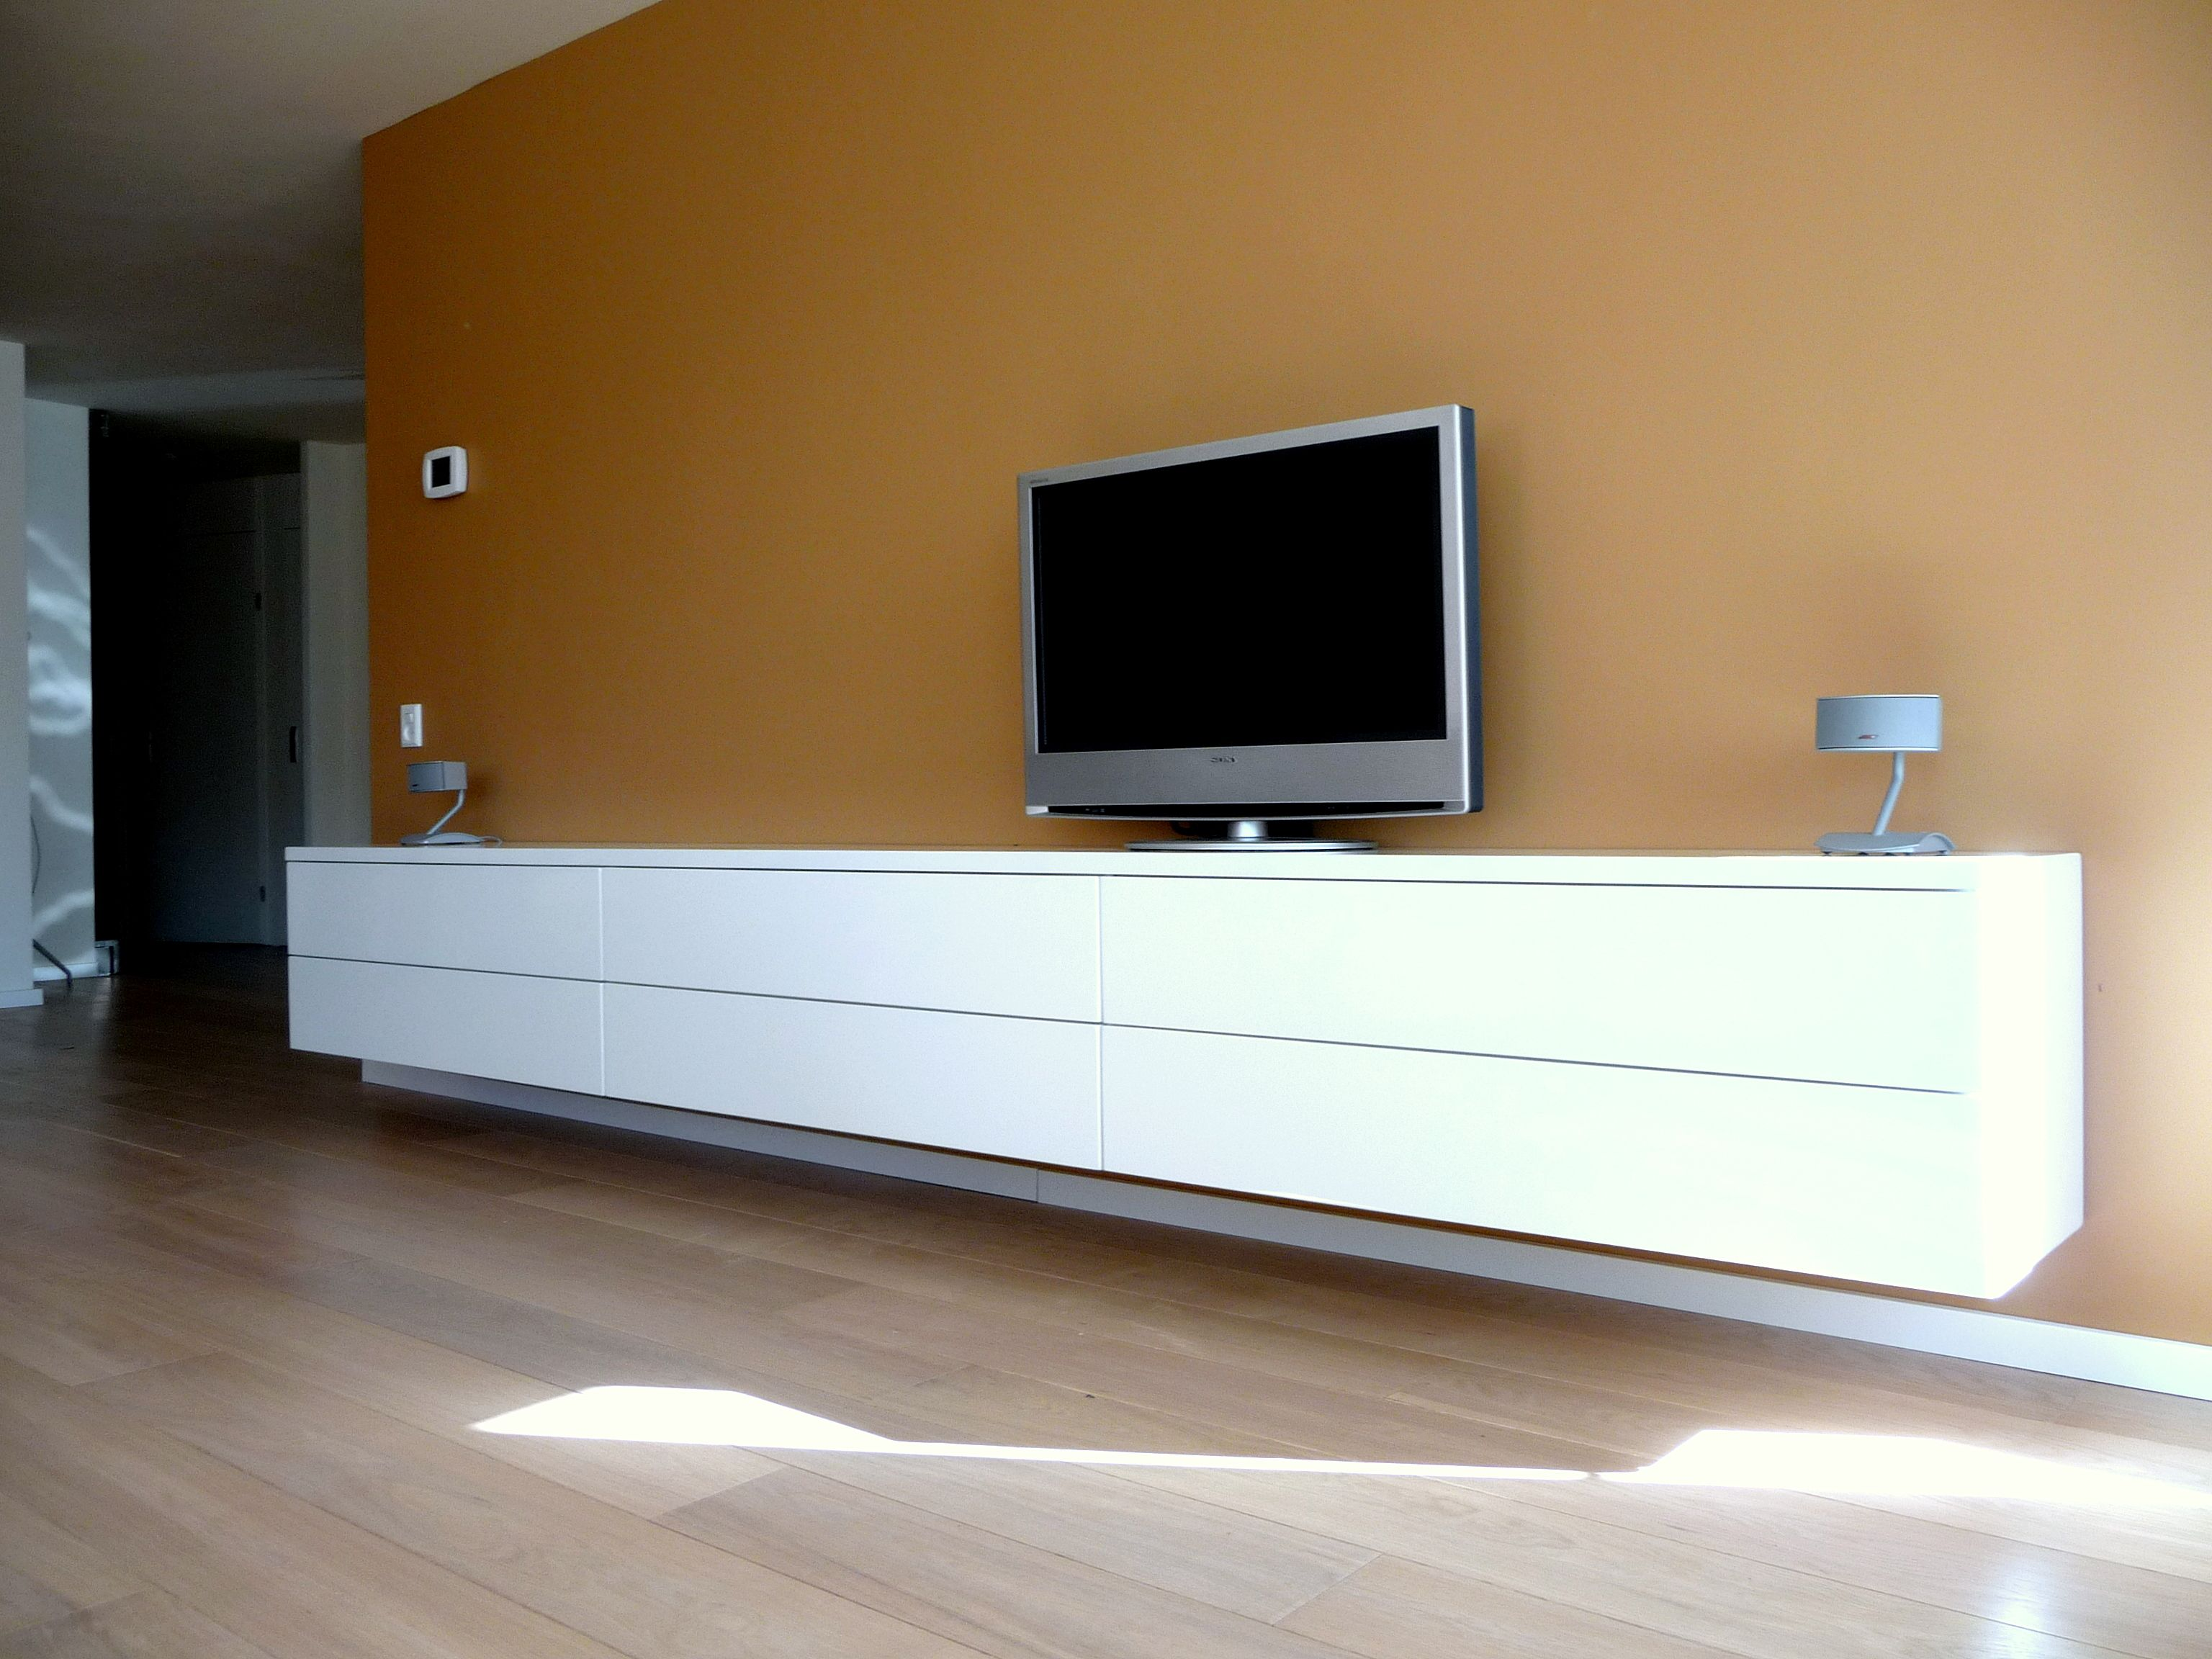 Zwevend hoogglans design dressoir tv meubel foto uit de for Tv dressoir hoogglans wit